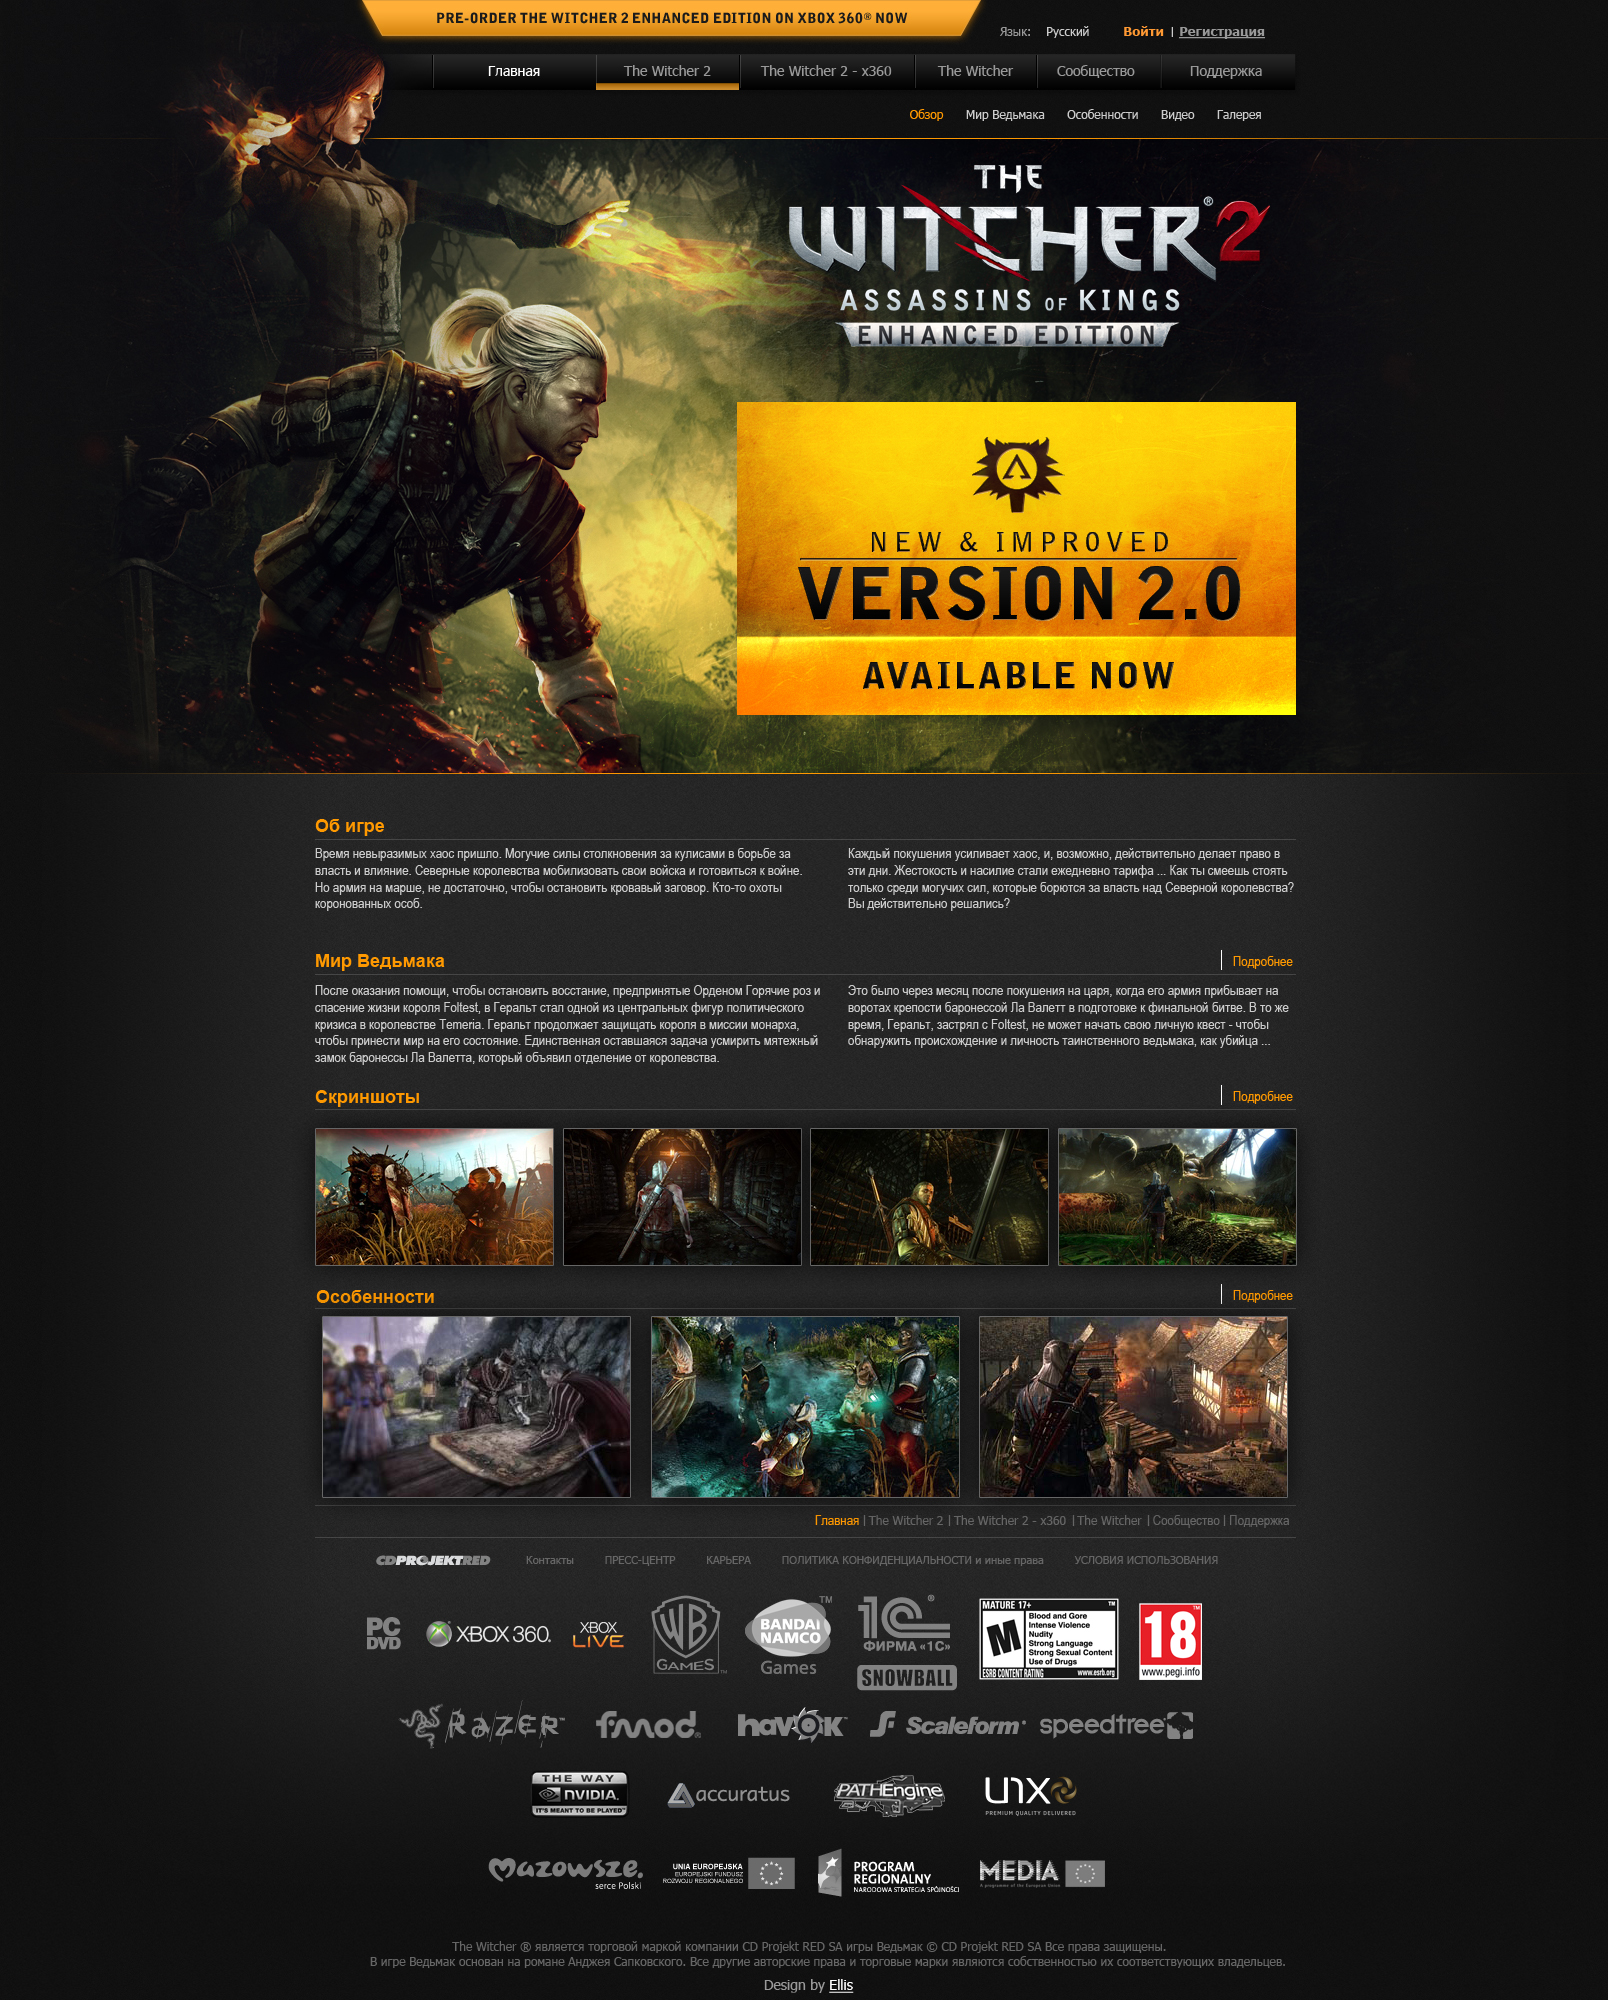 The Witcher 2 ReDesign